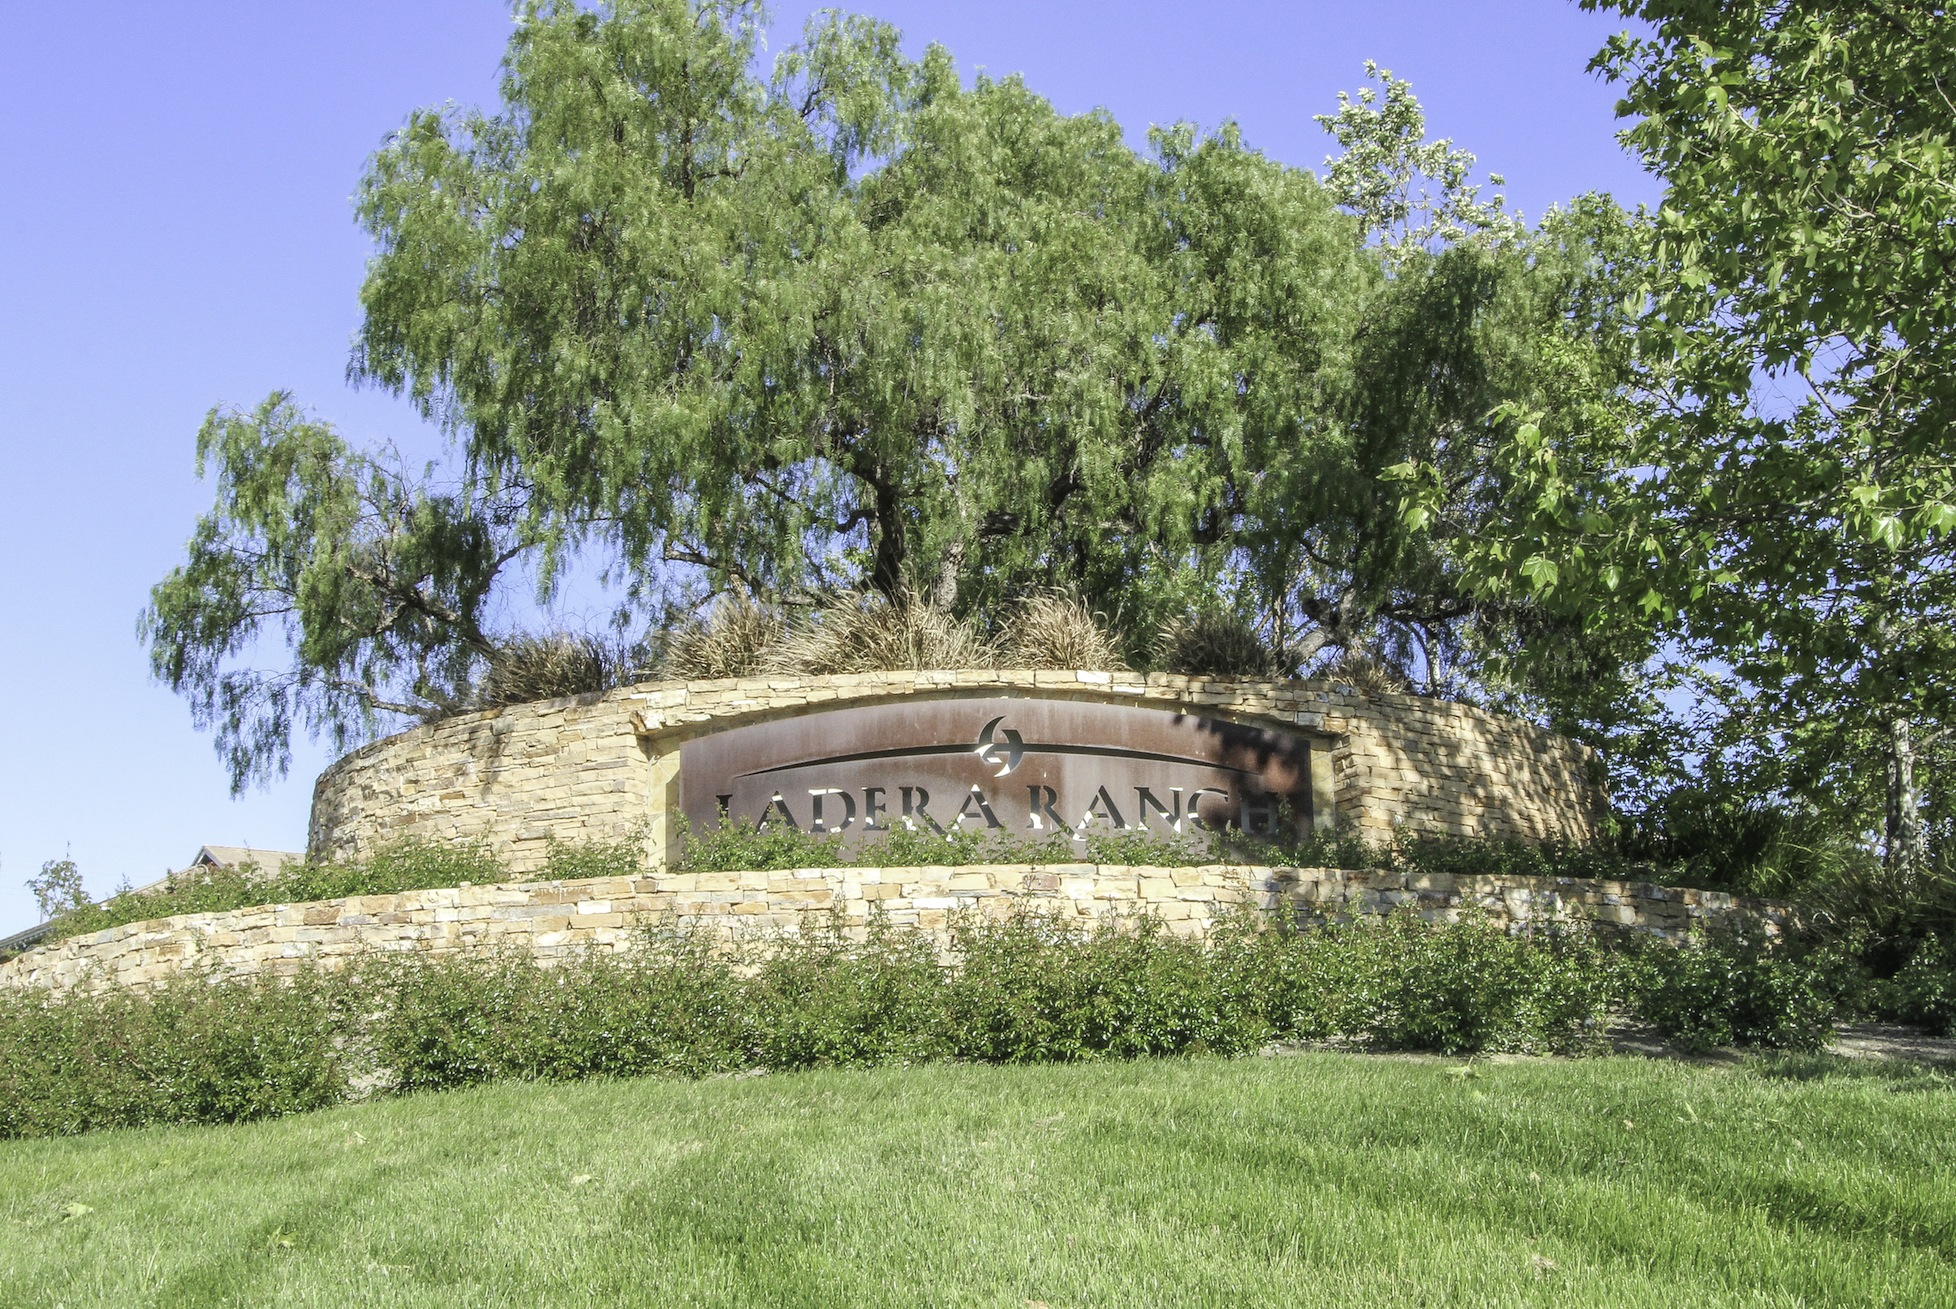 ladera ranch big and beautiful singles Ladera ranch trail is a 62 mile moderately trafficked loop trail located near rancho santa margarita, california that features beautiful wild flowers and is rated as .